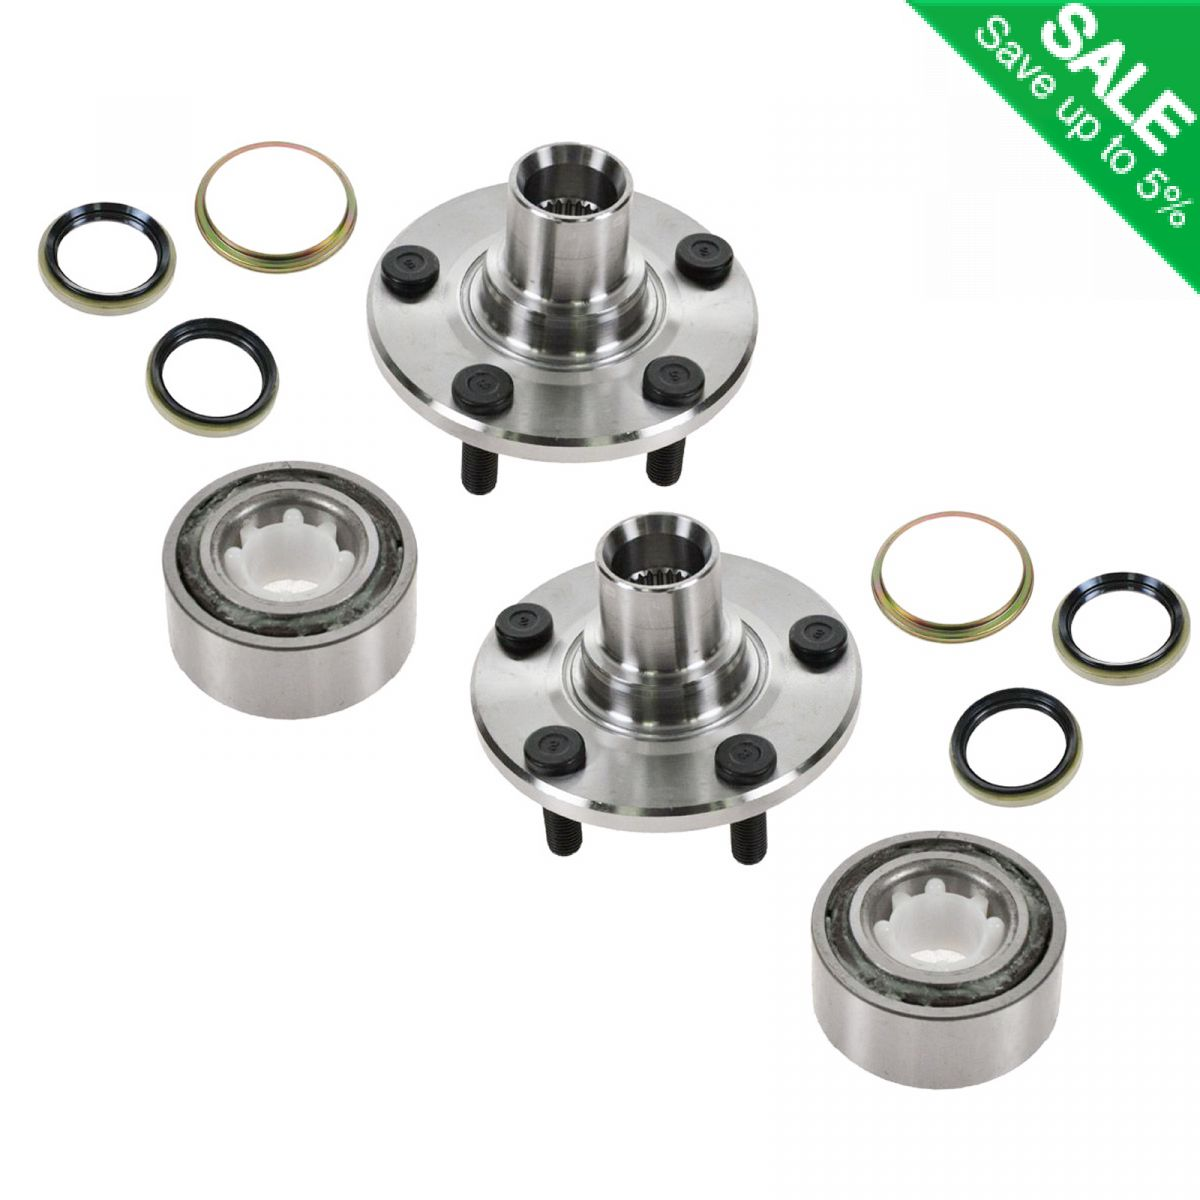 2019 Toyota Camry Hub Bearing Assembly Rear Axle Left: Front Wheel Hub & Bearing Repair Kit Pair Set For Toyota